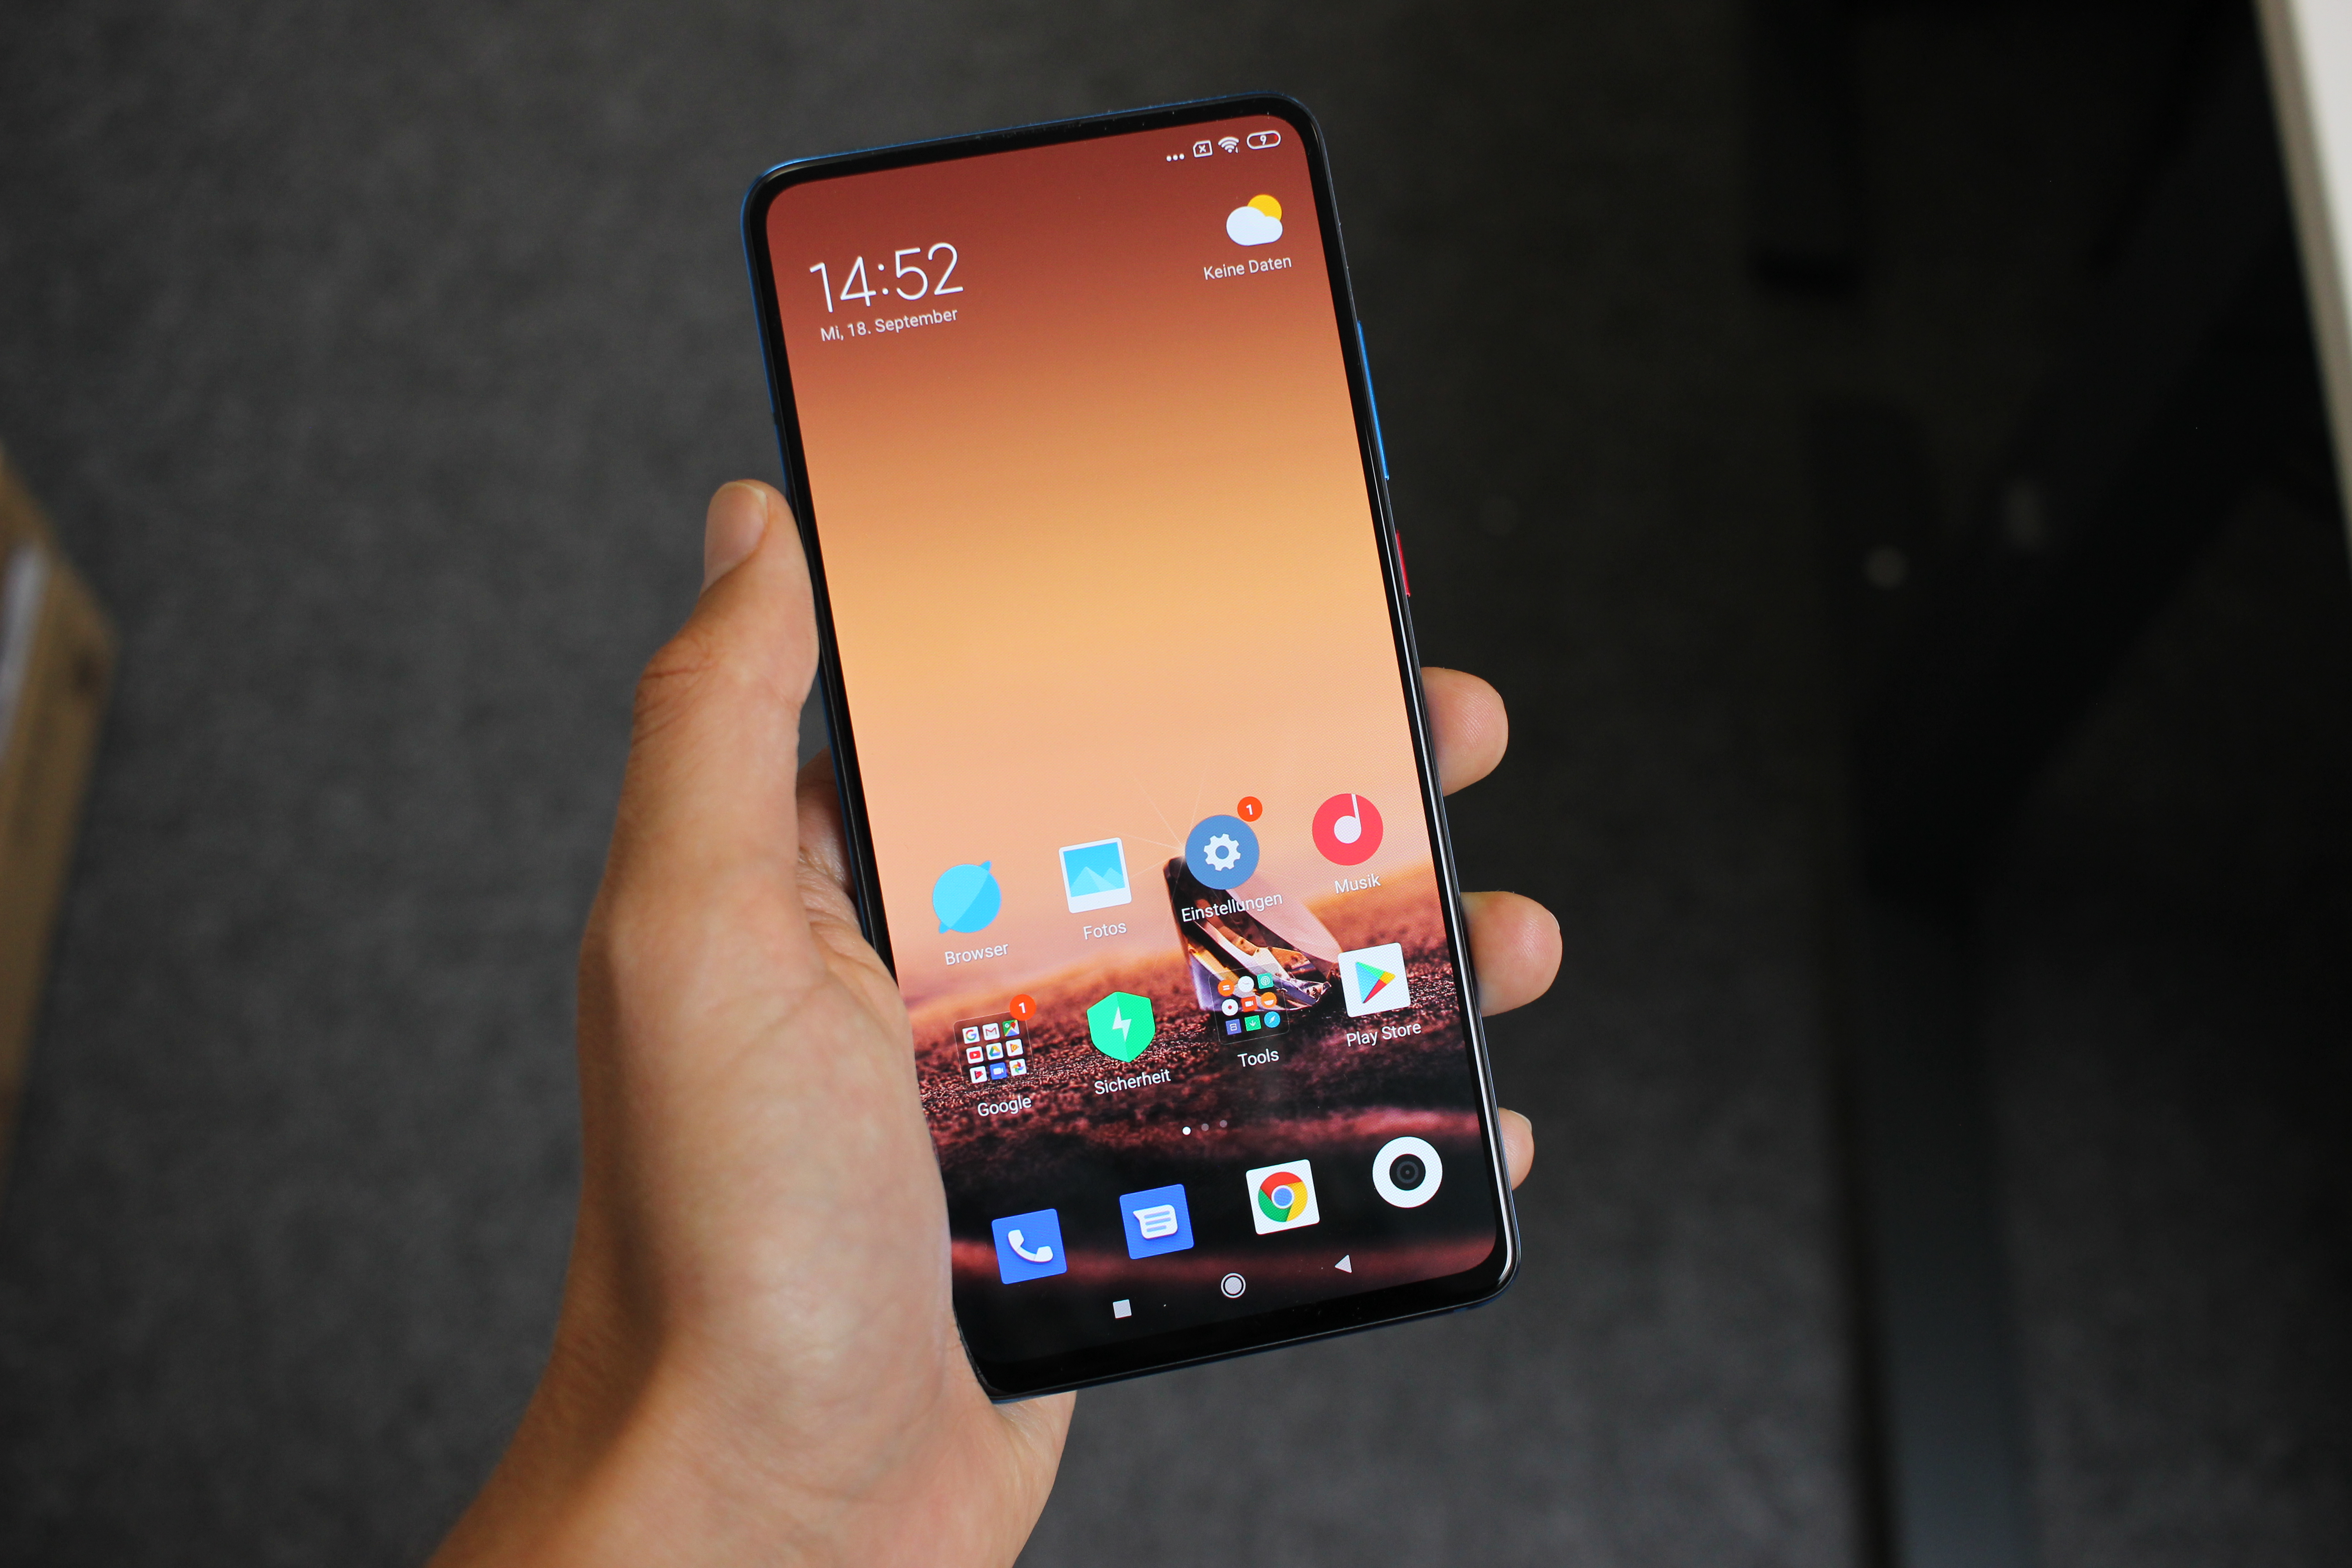 Xiaomi Mi 9t Pro Top Smartphone With 64 Gb For 359 49